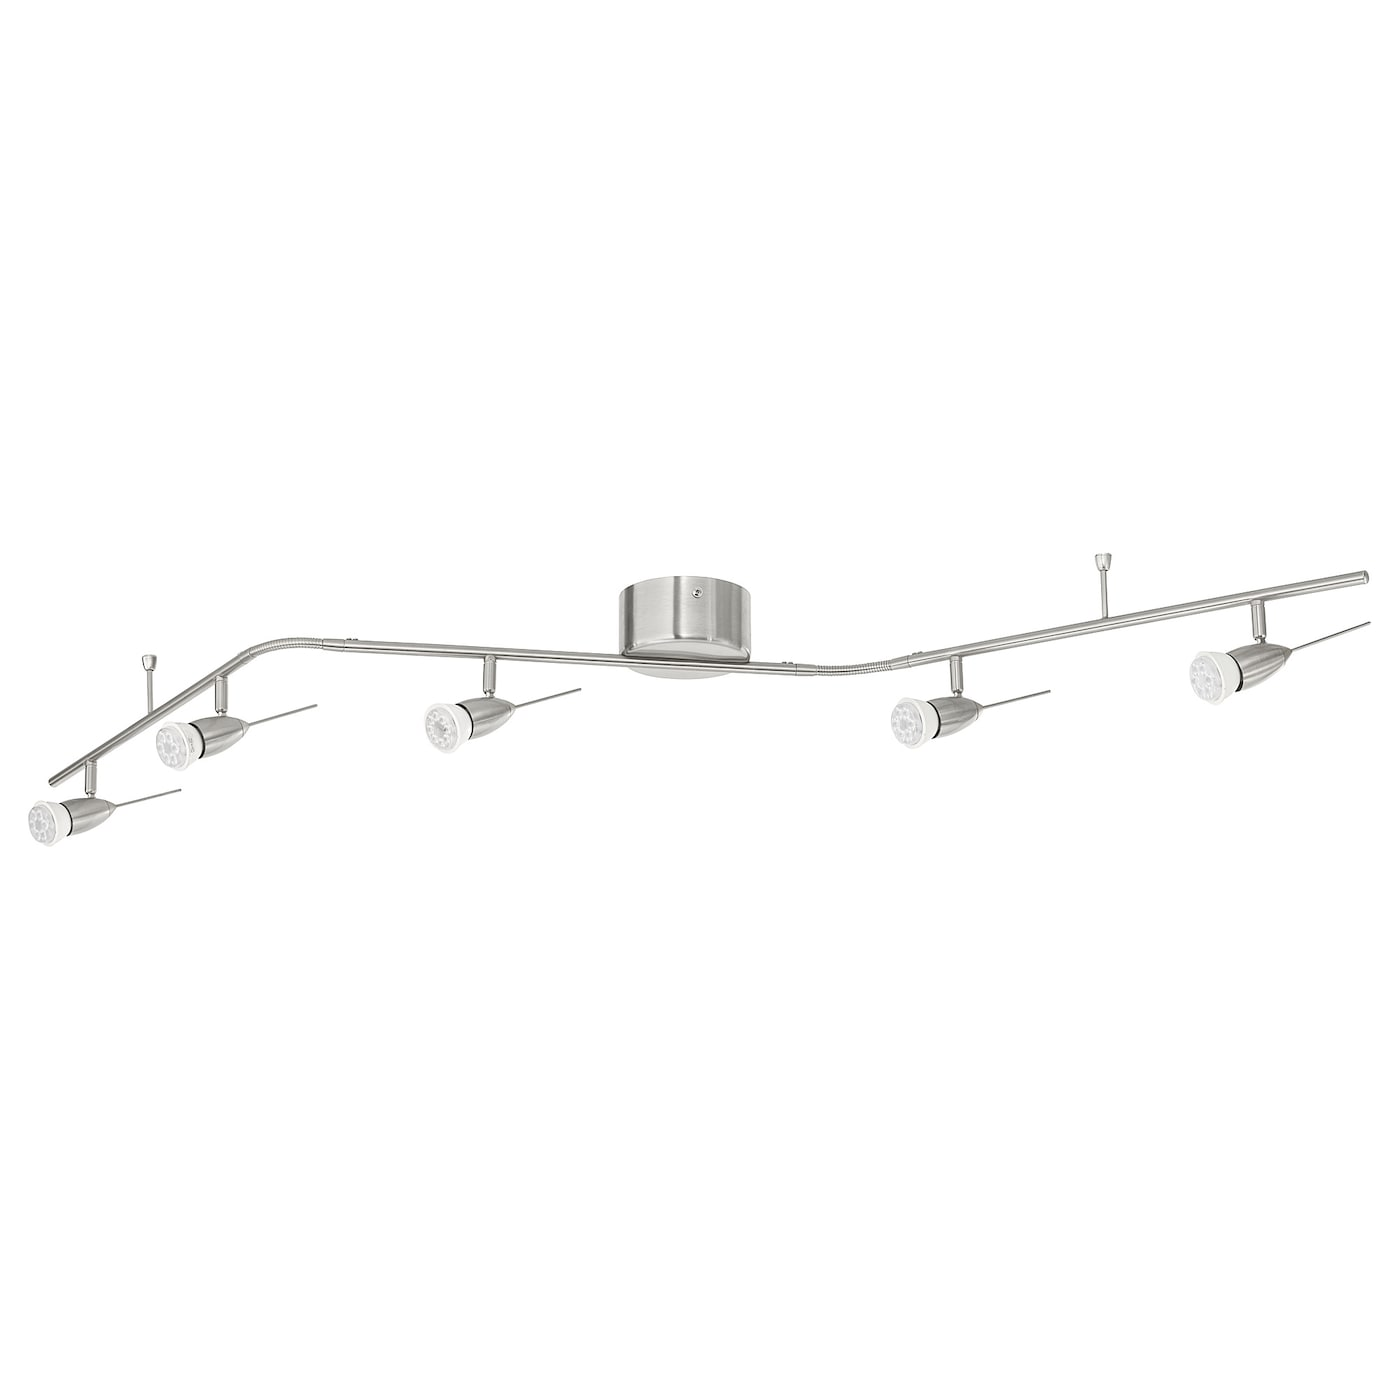 Ceiling Track 5 Spots Nickel Plated